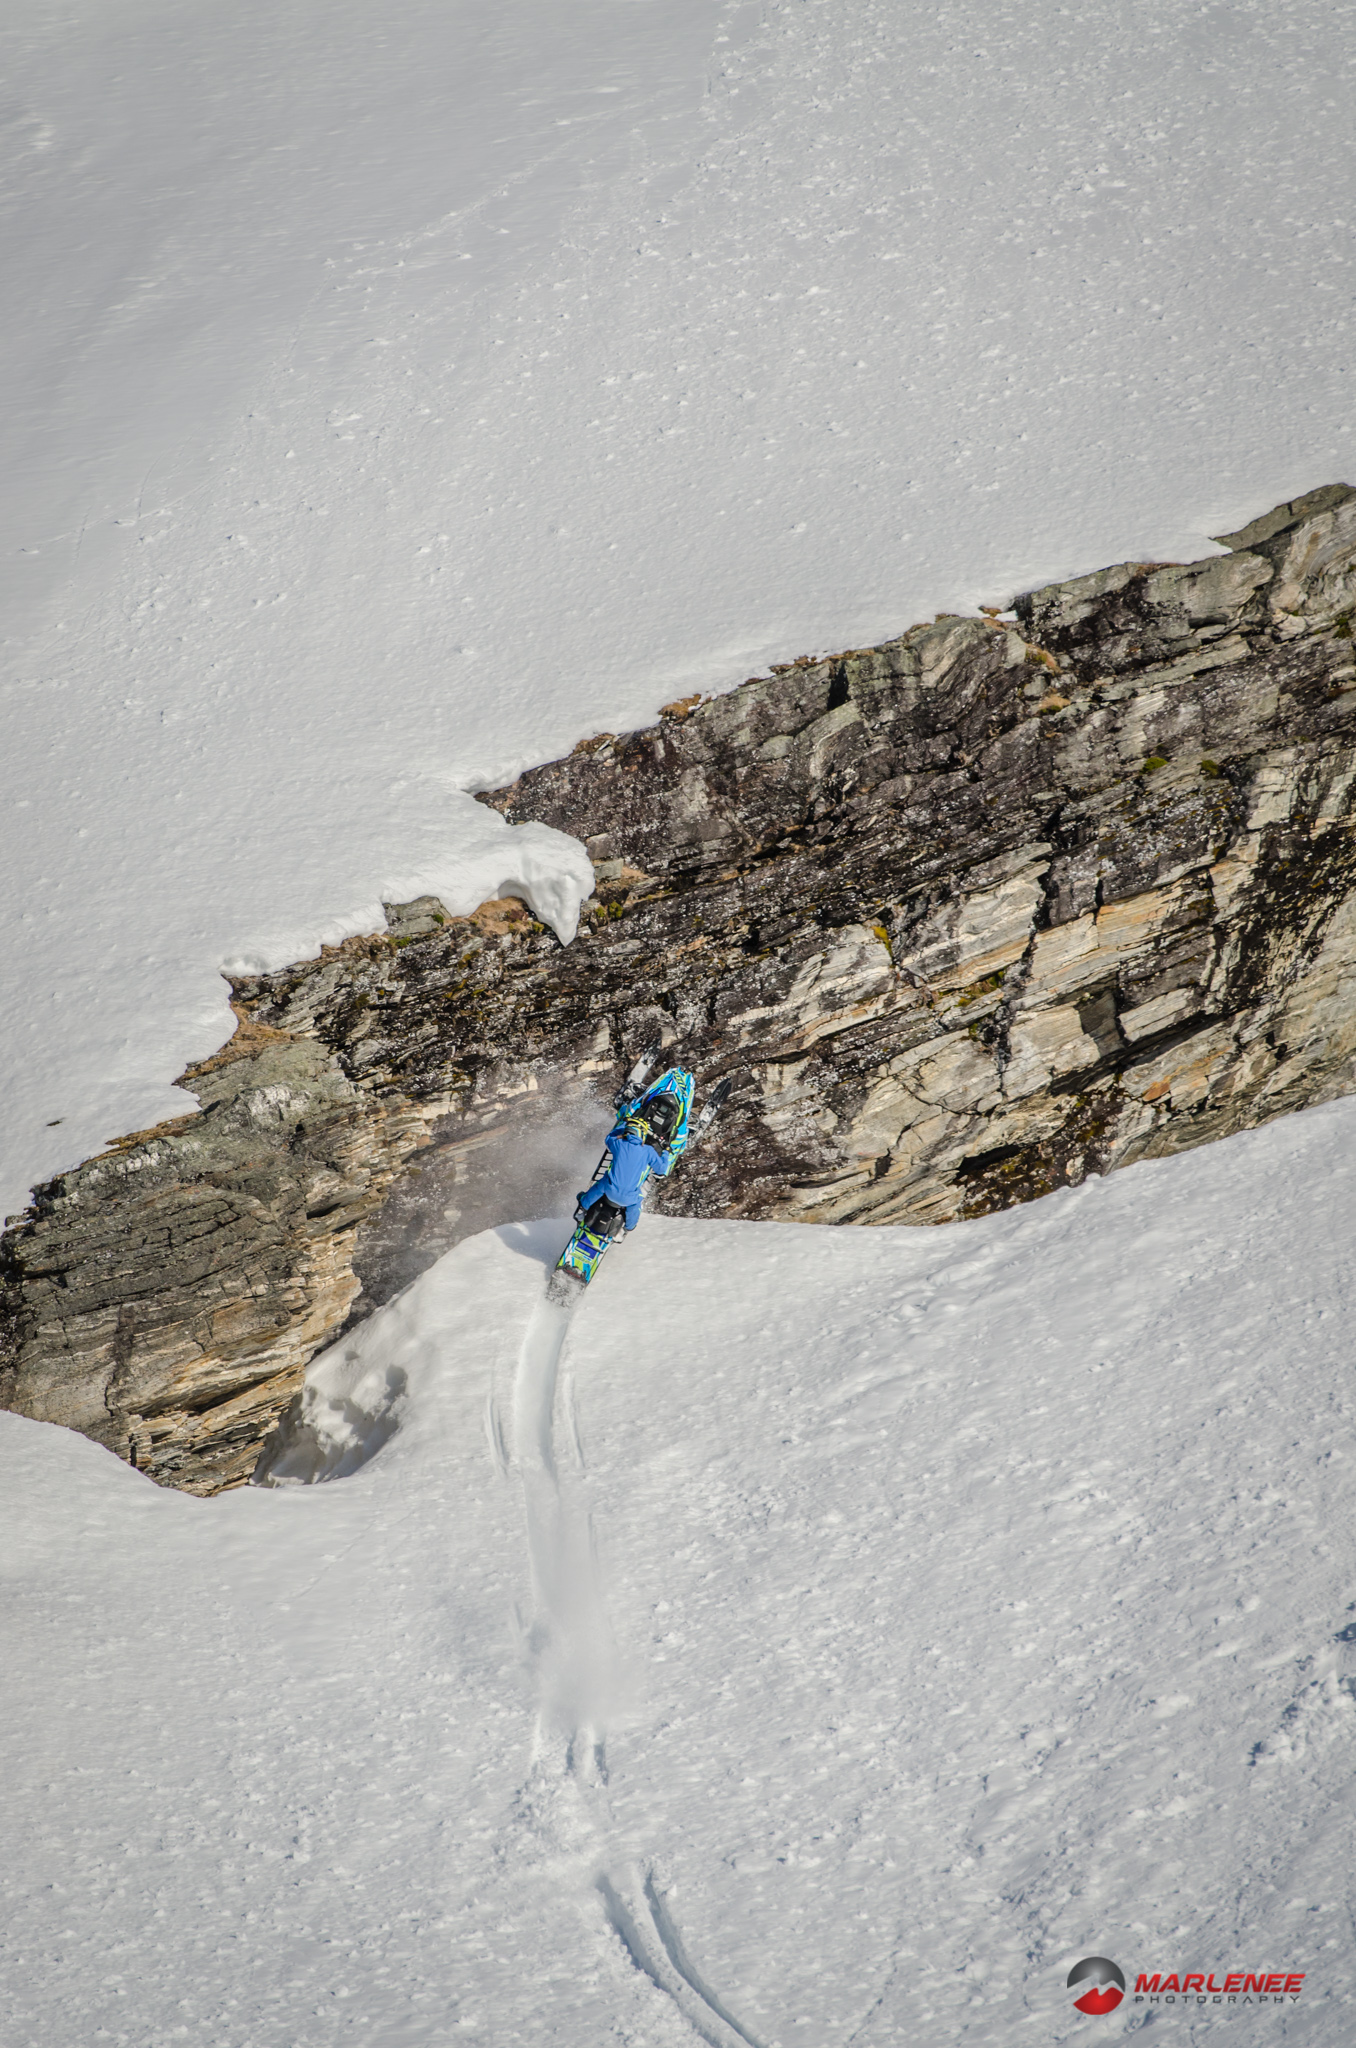 Adam Onasch Uses Every Inch of Terrain